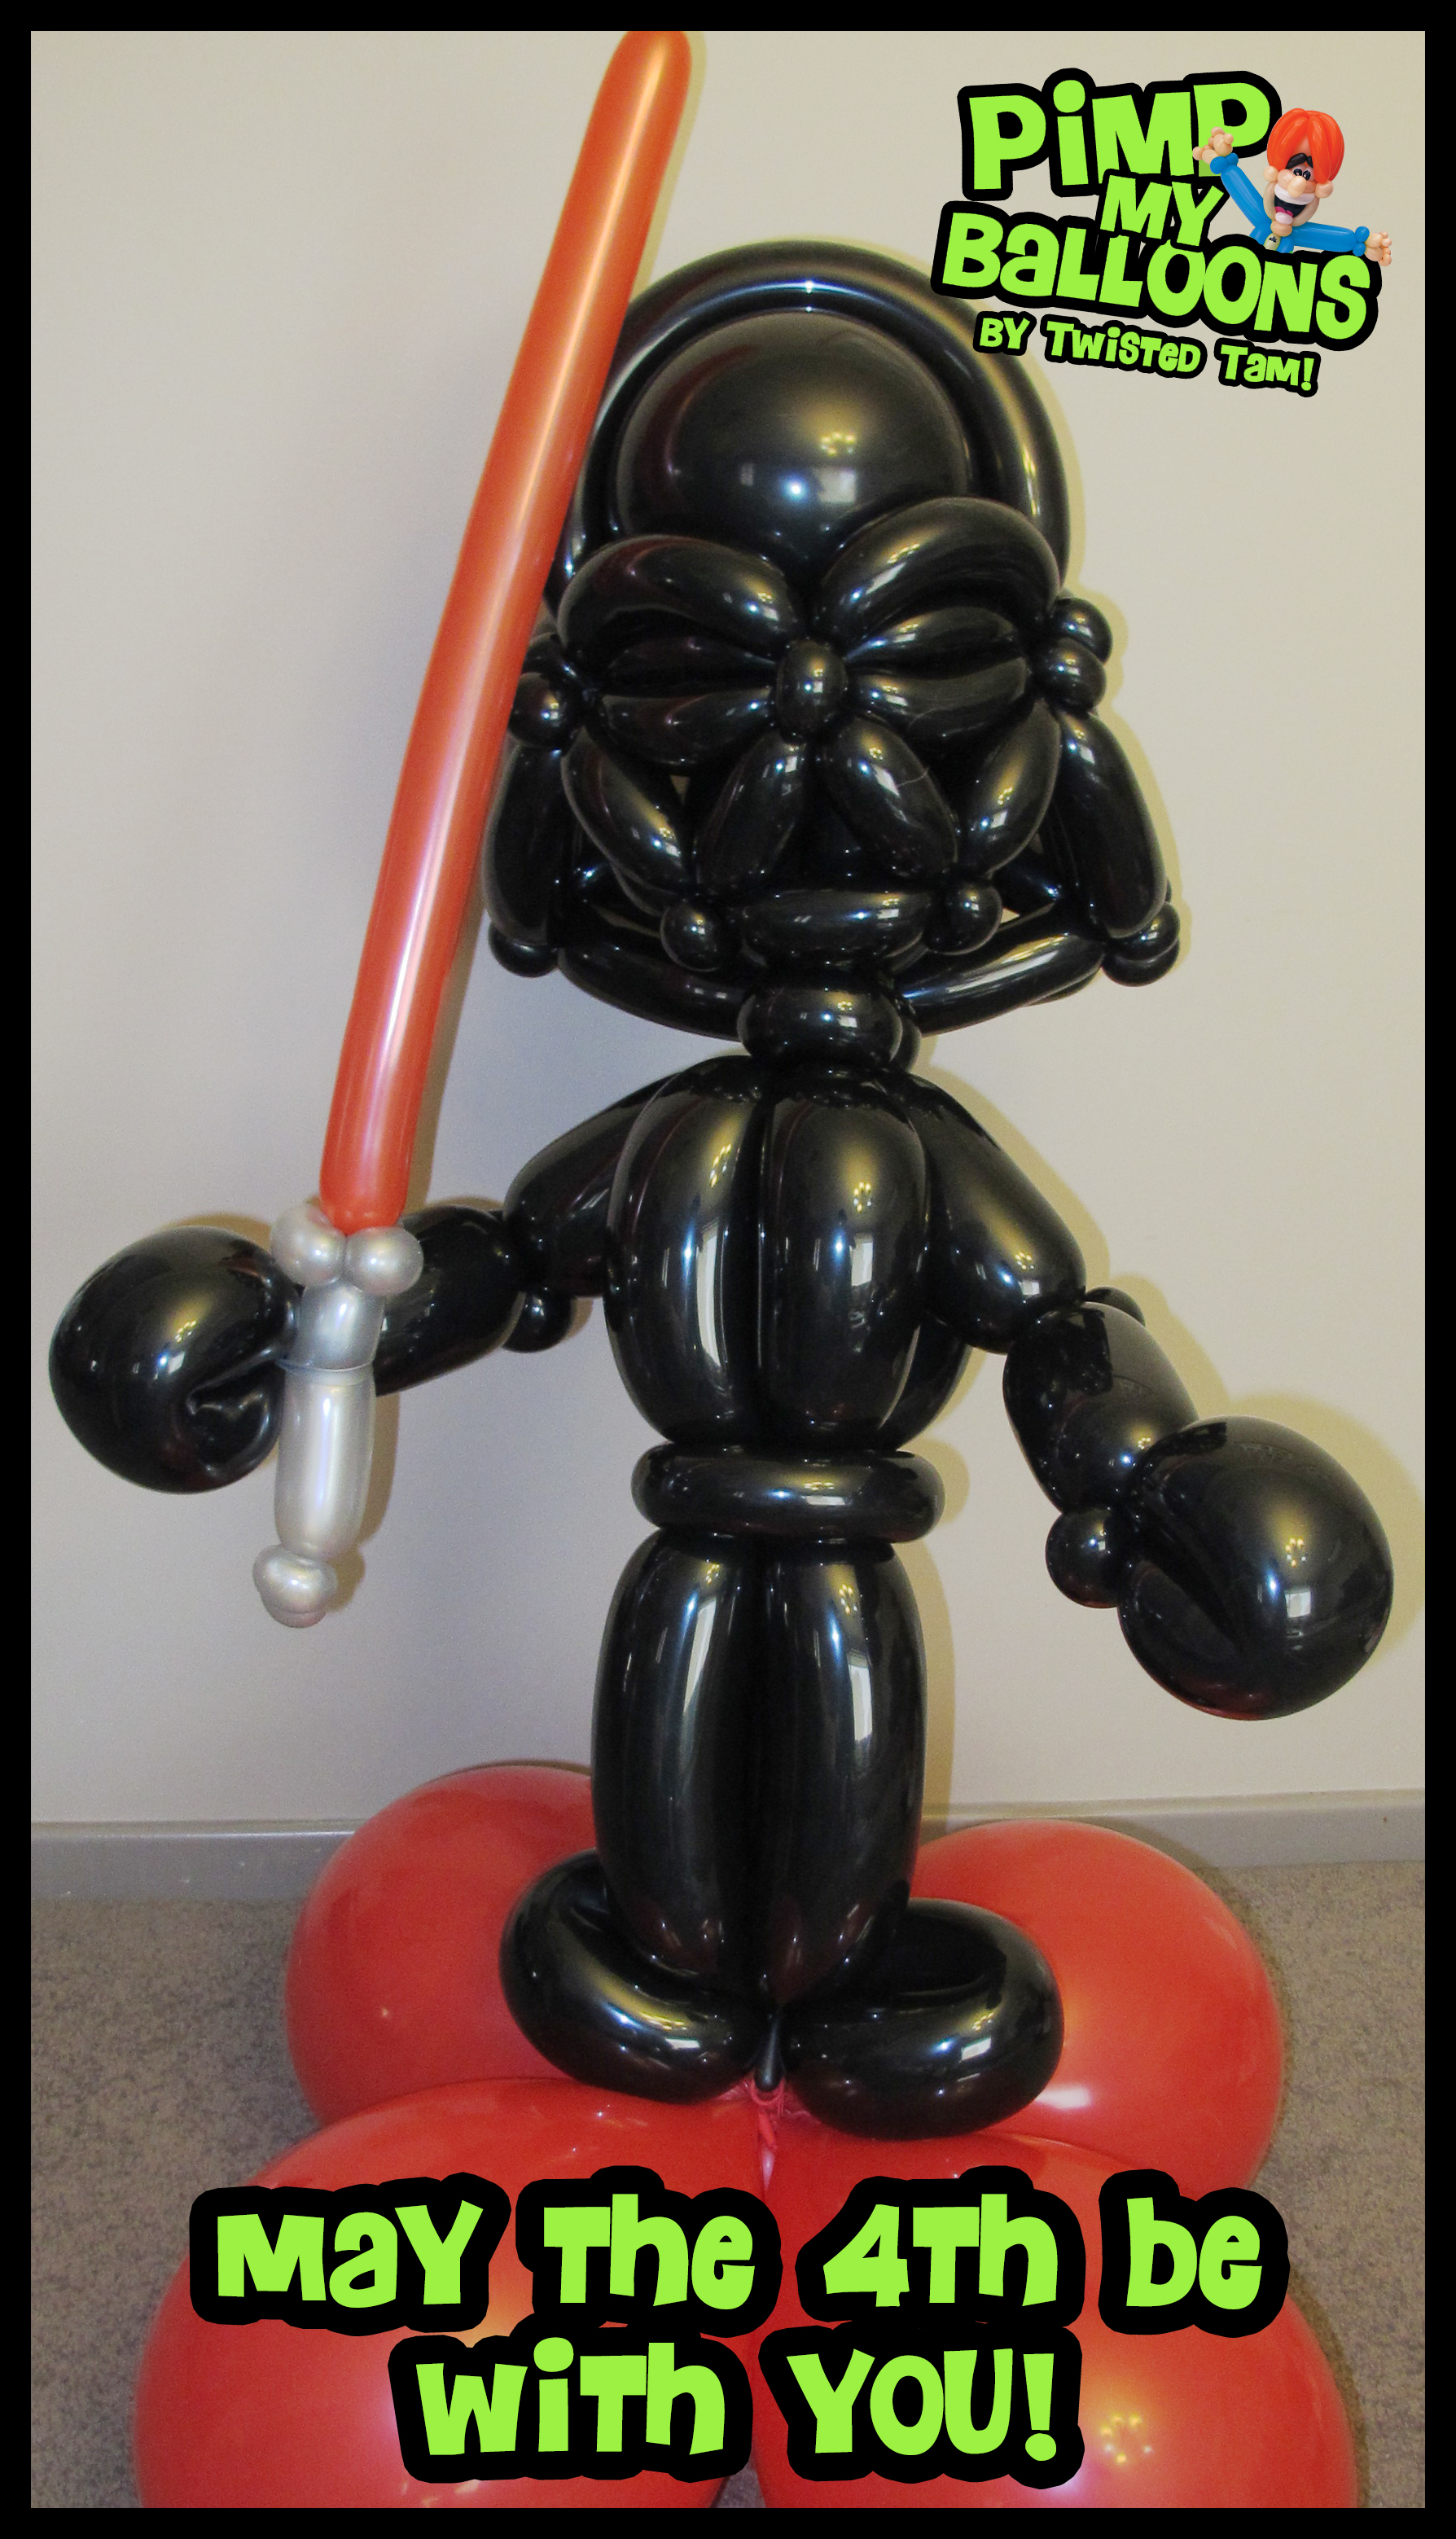 Pimp_my_balloons_Darth_Vadar